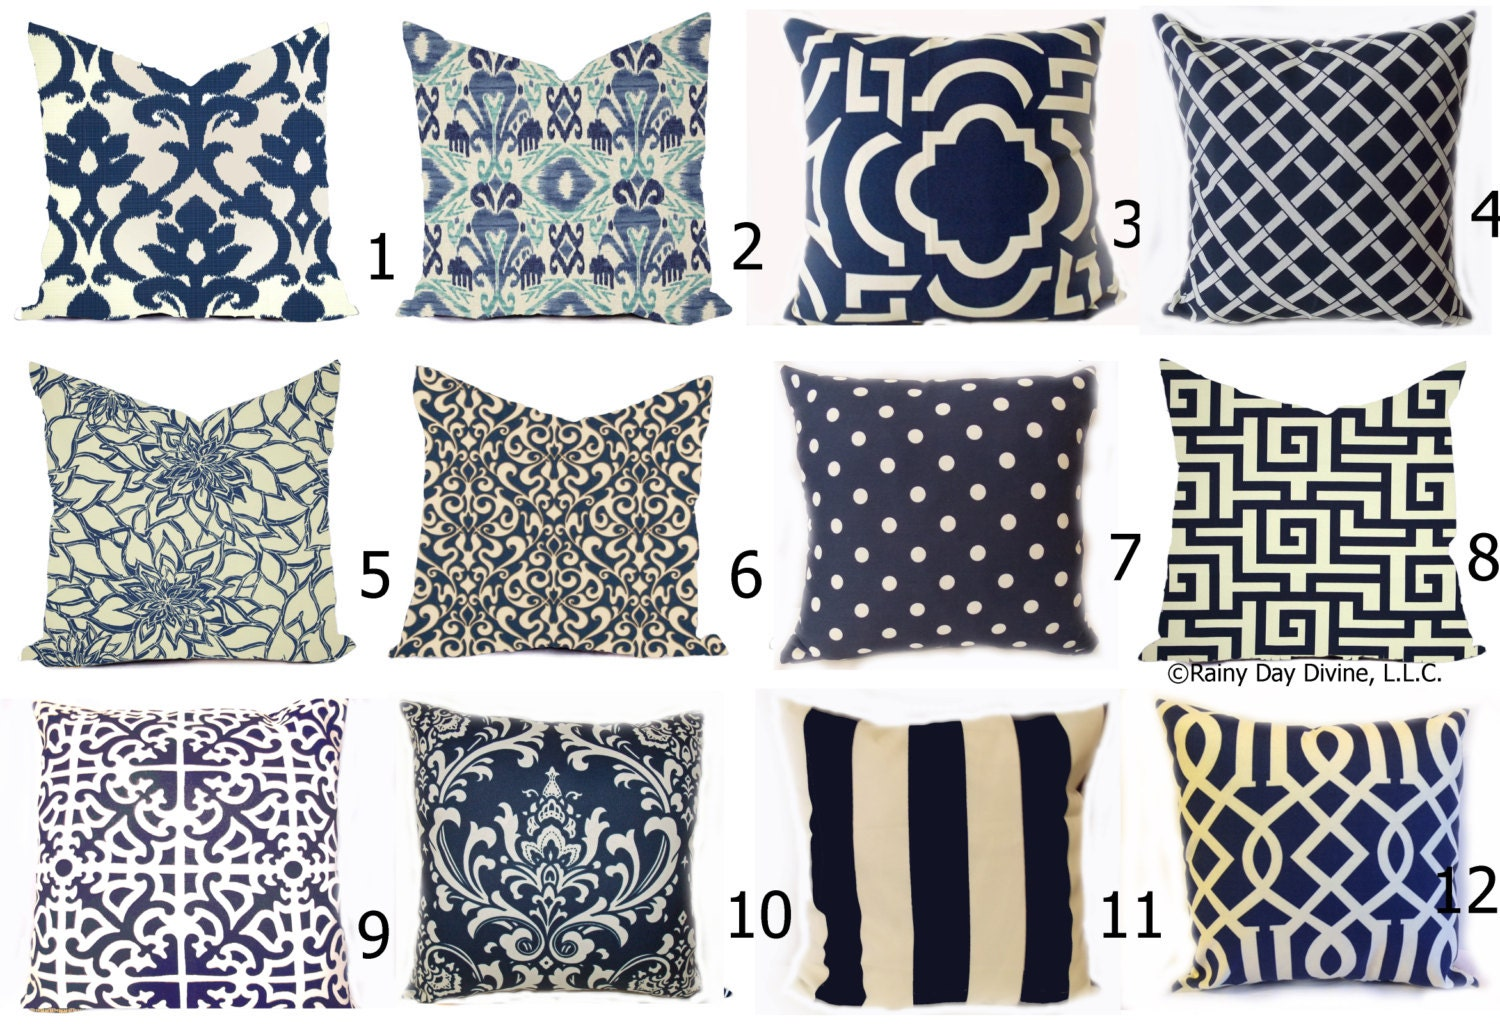 Wonderful Outdoor Pillows Or Indoor Custom Covers   Shades Of Navy Blue Ivory Ikat,  Modern Patio Throw Accent